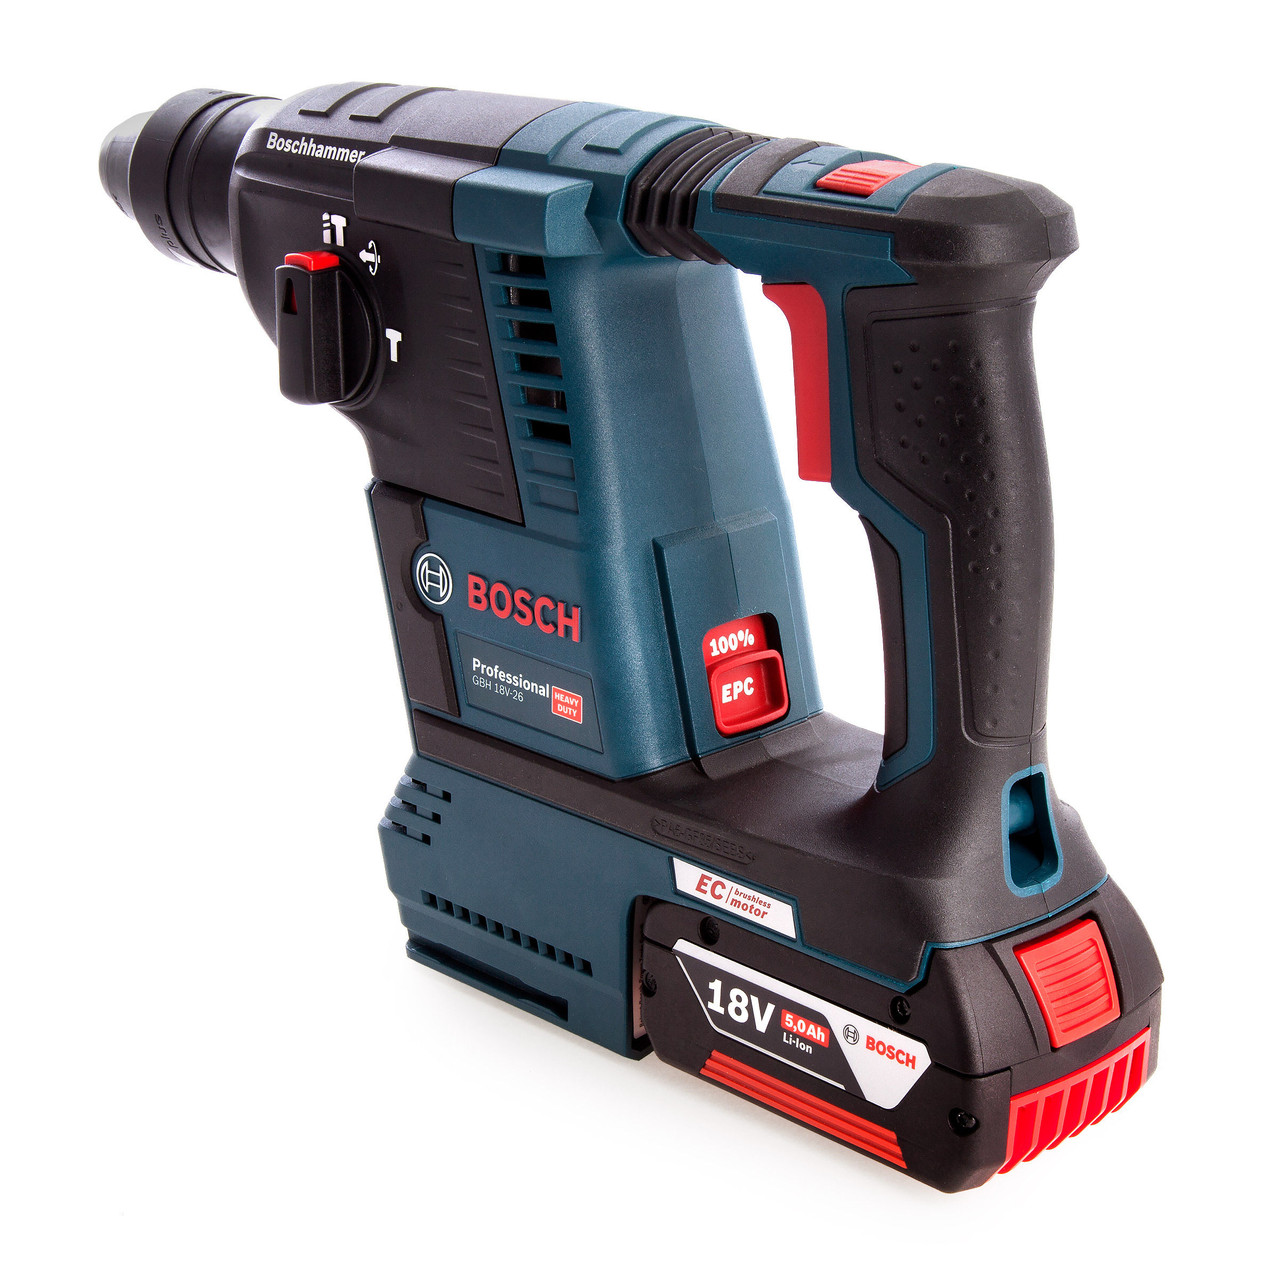 18V rechargeable brushless cordless rotary hammer drill